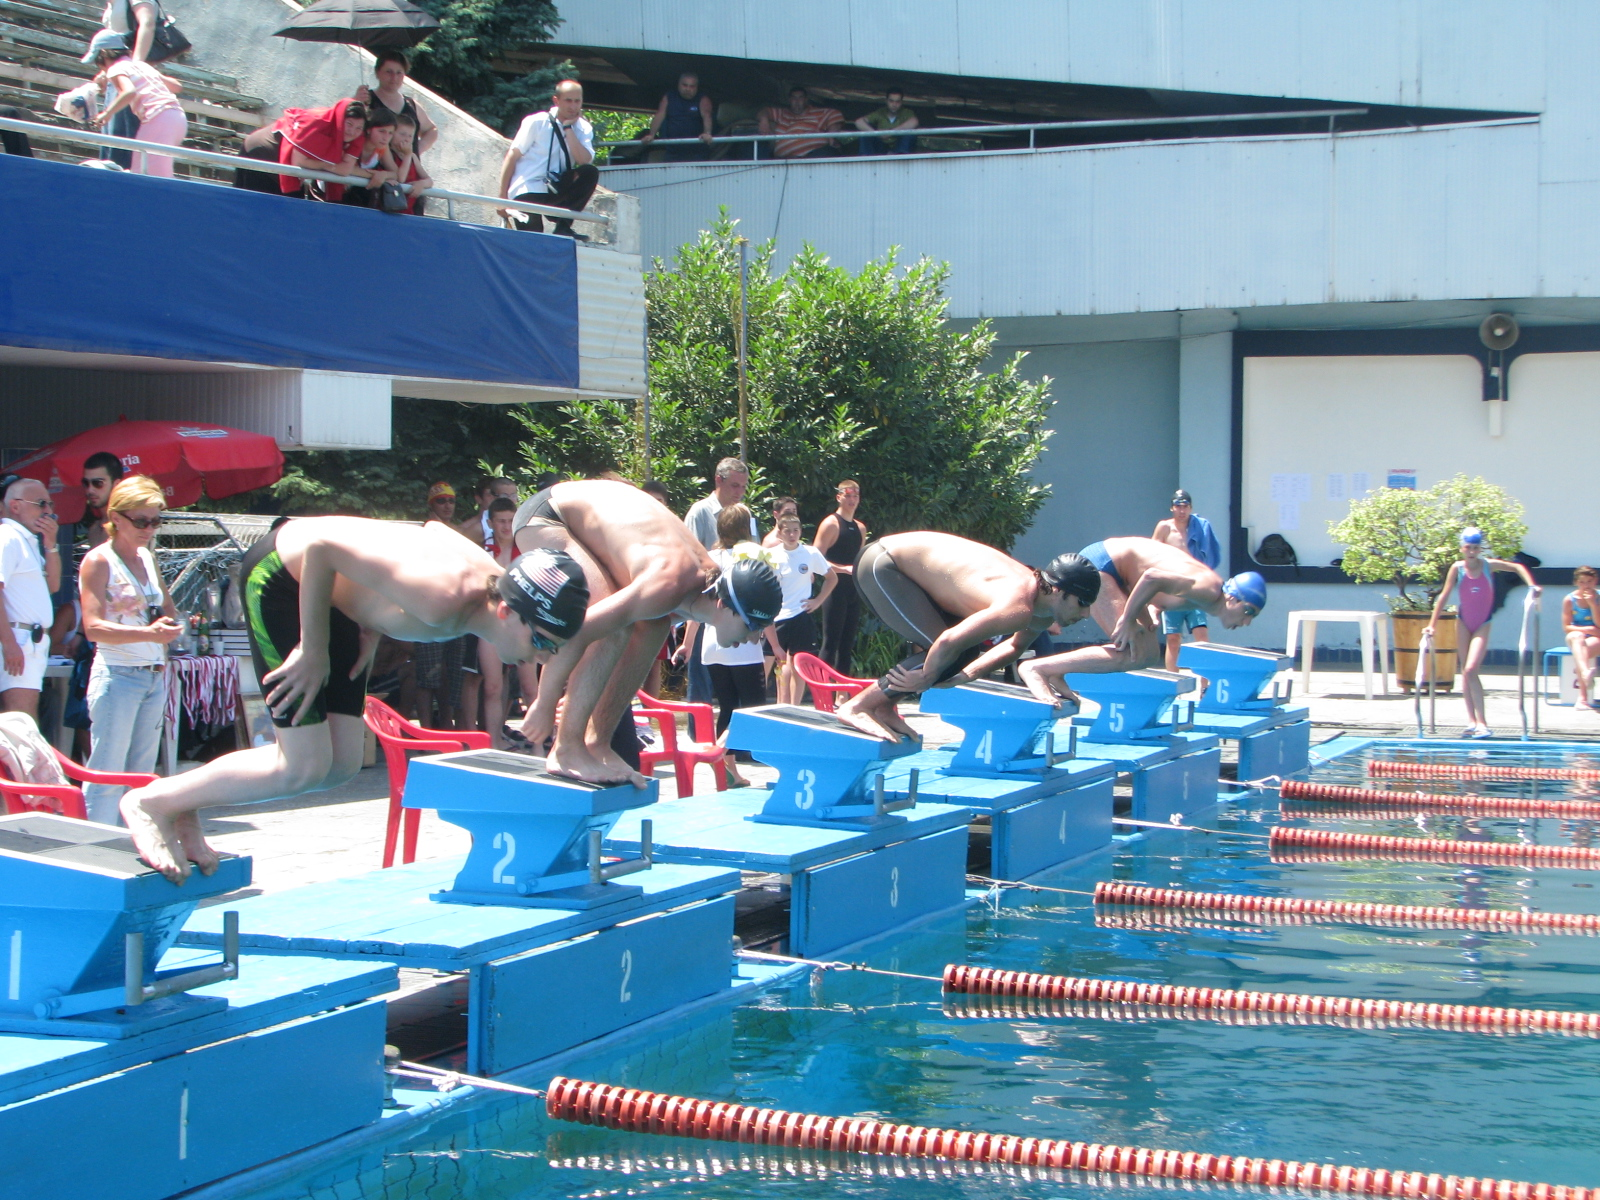 File Swimmers Diving Off Starting Blocks Doing Free Colchian Wikimedia Commons